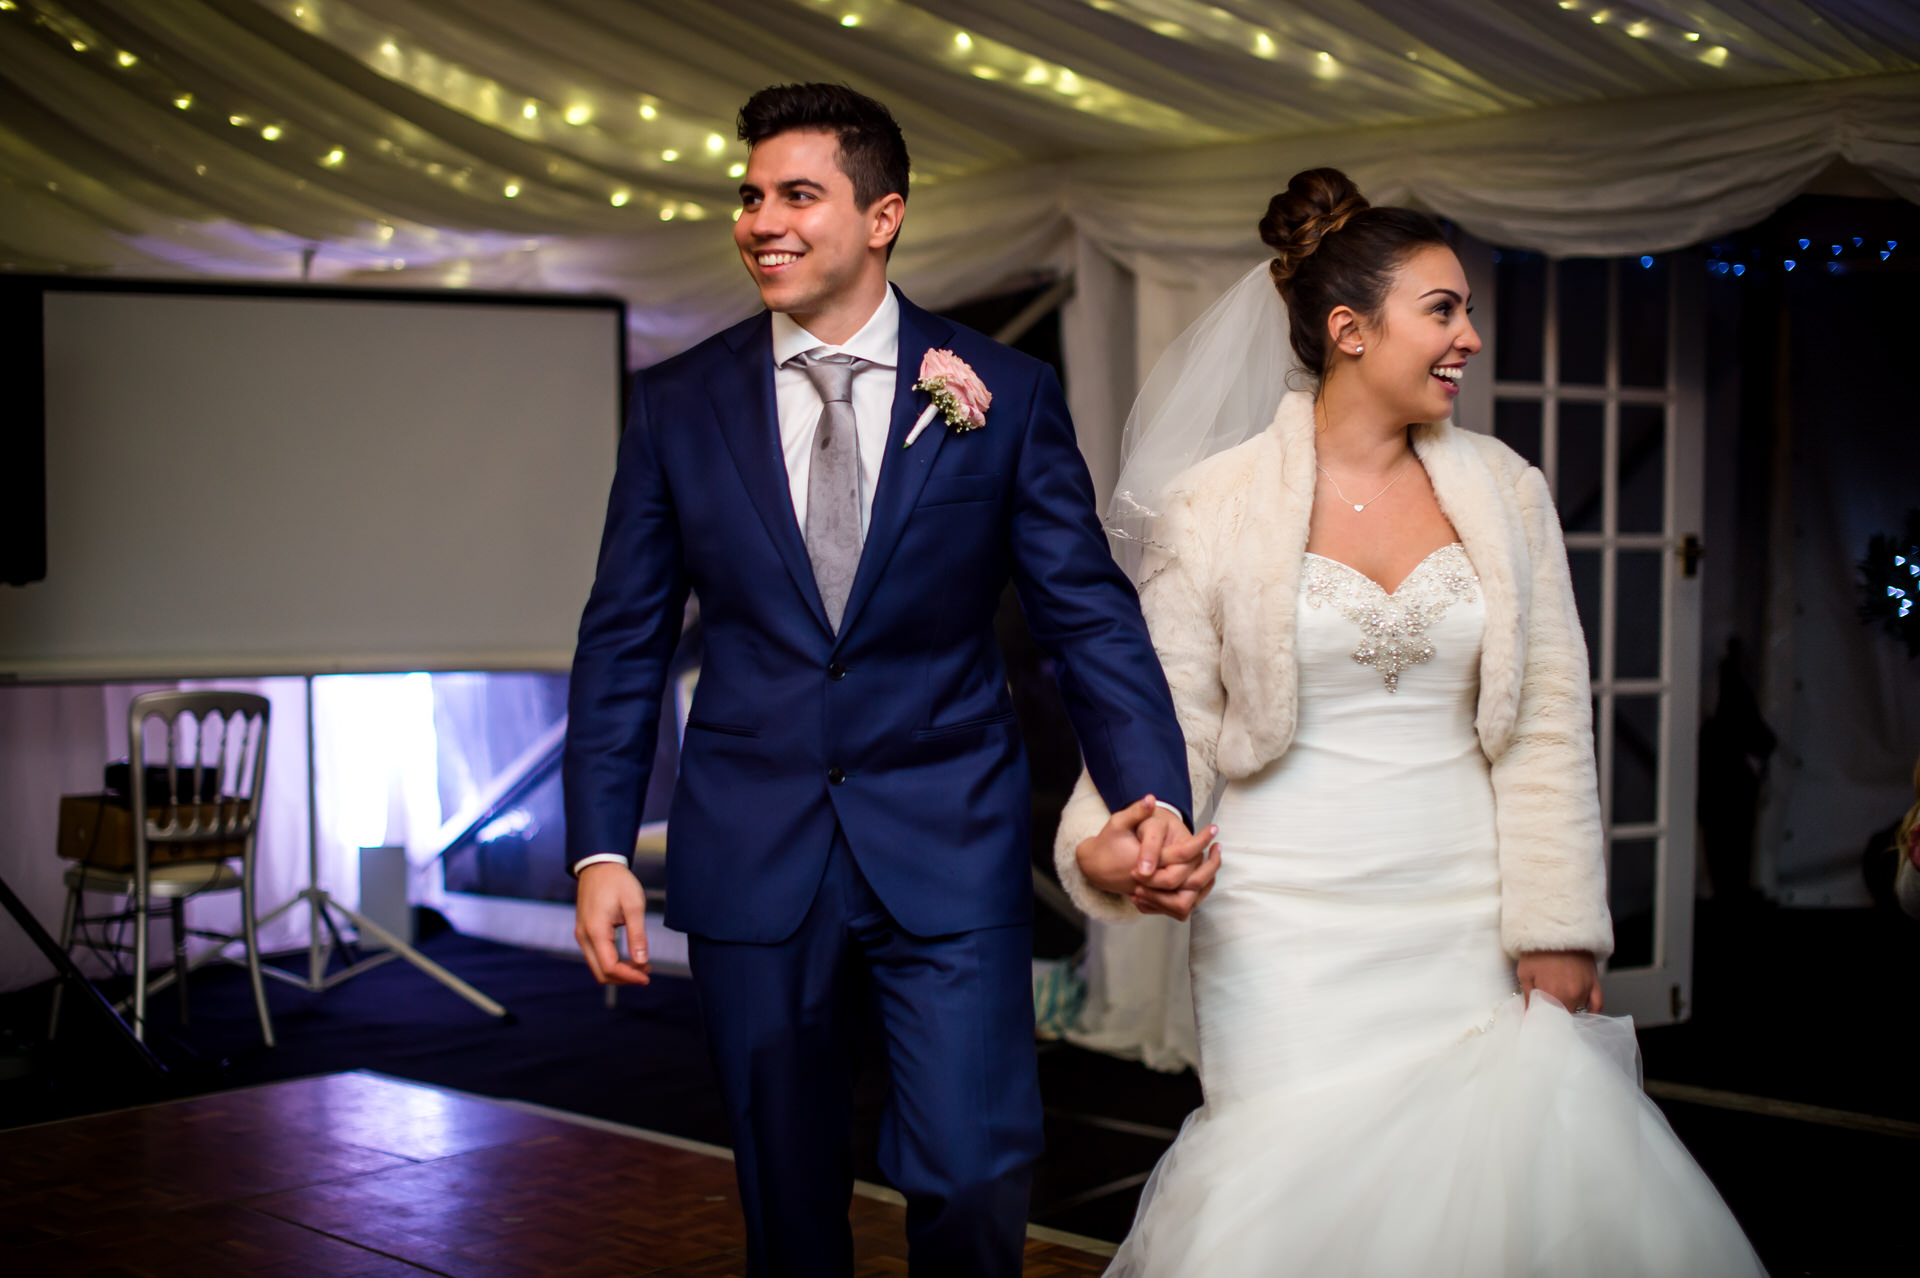 Isle of Wight marquee wedding